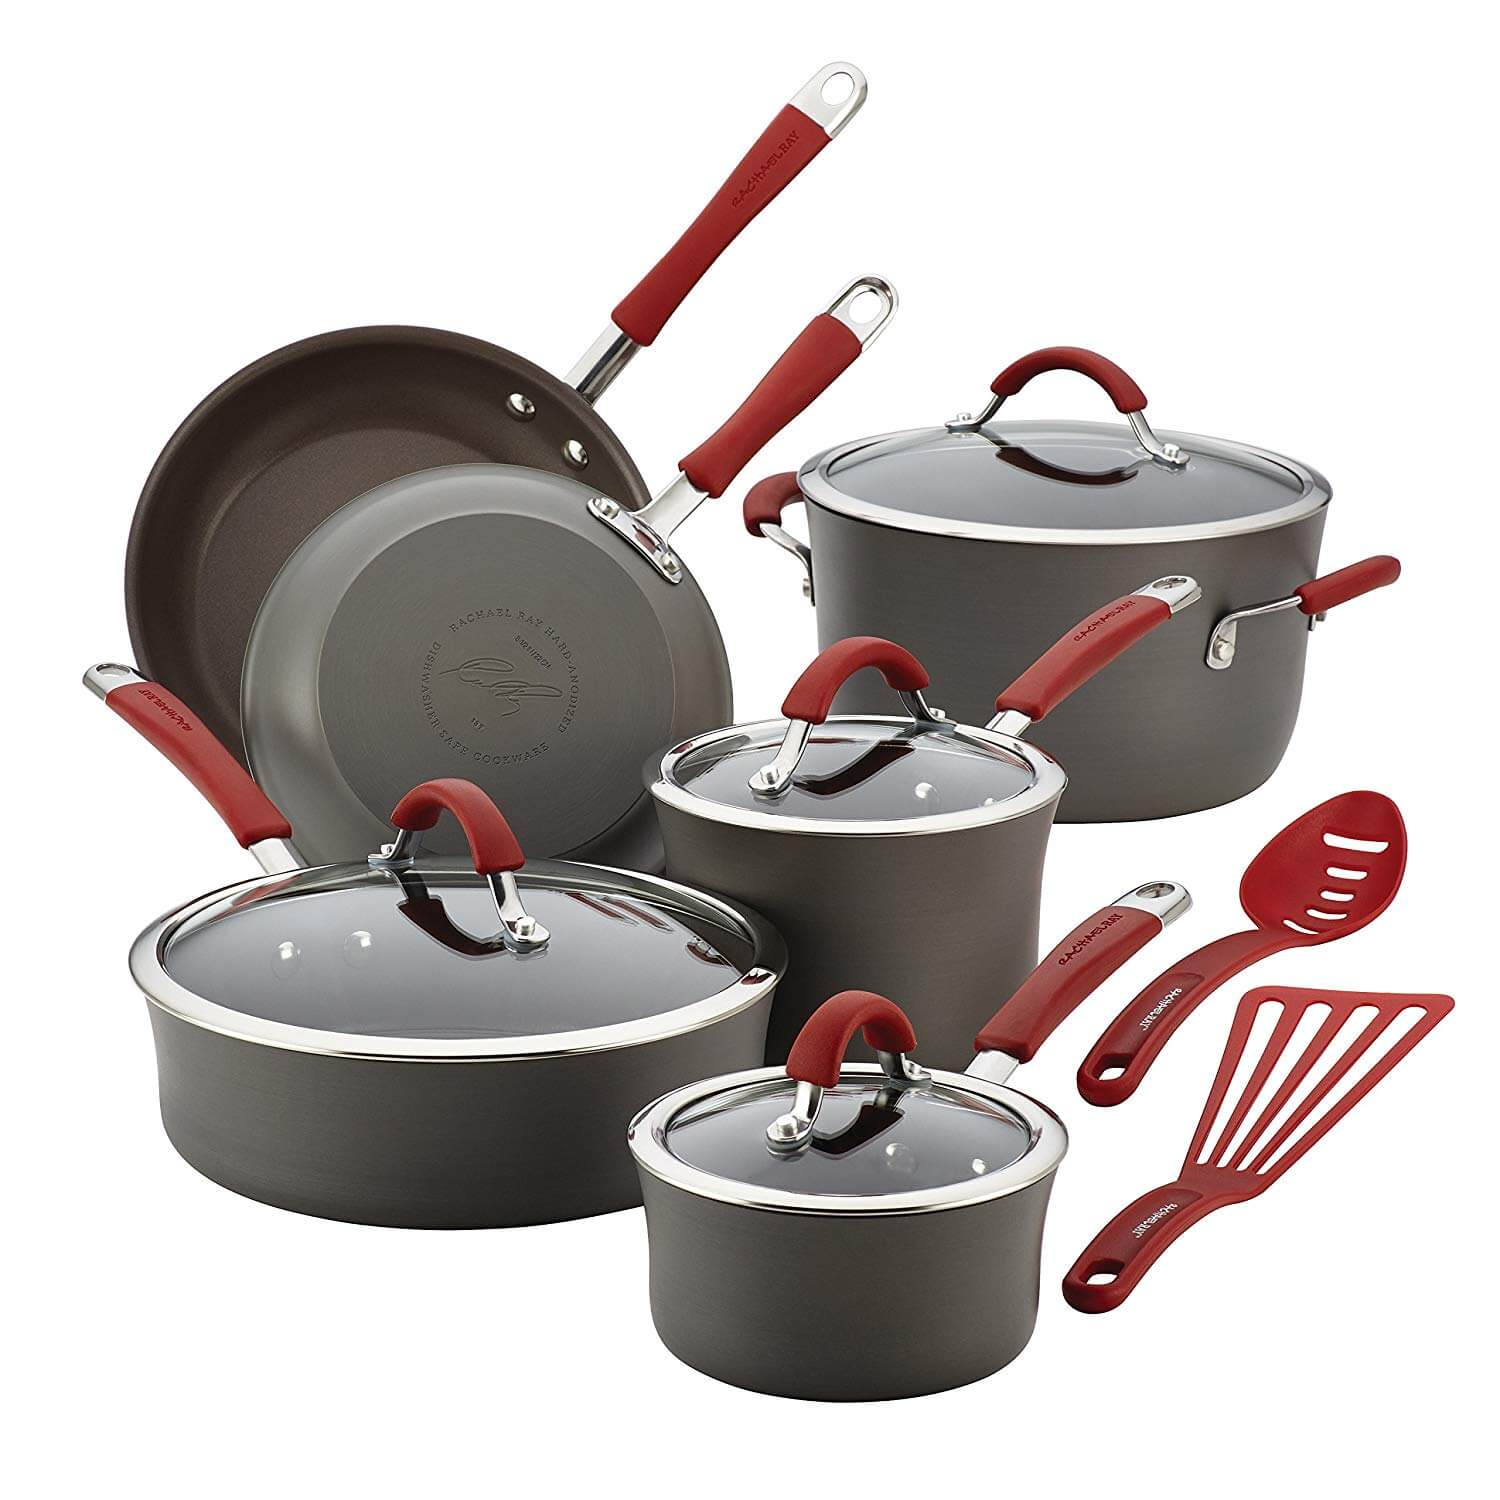 Rachael Ray Cucina Hard Anodized Aluminum Non-stick Cookware Set